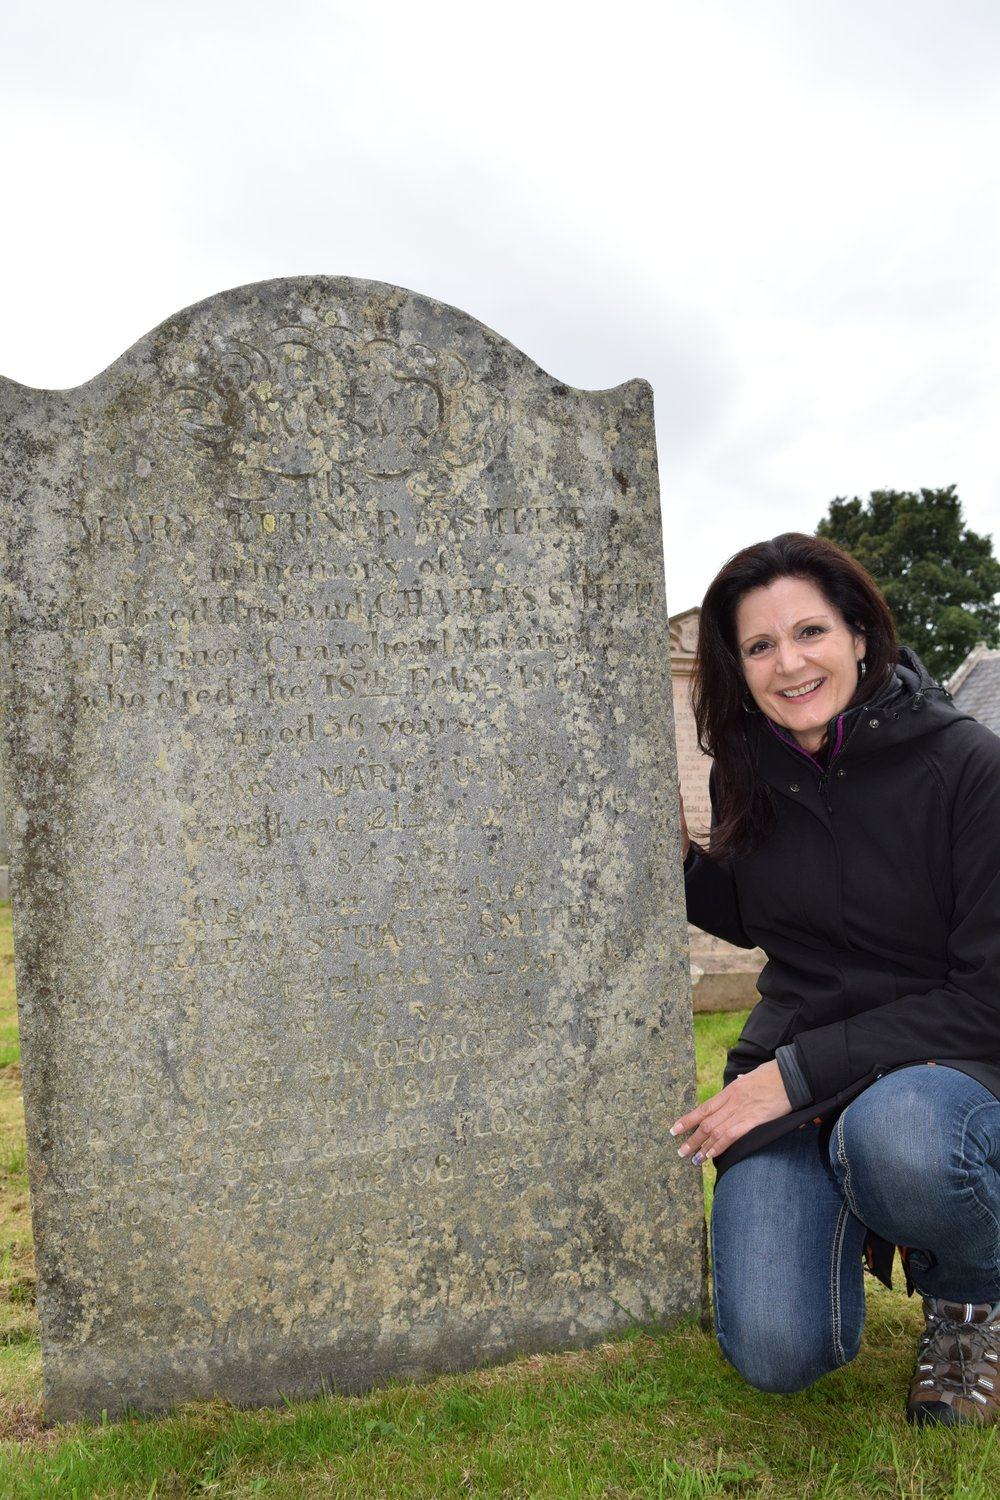 Theresa Mackay at the gravesite of her ancestor and innkeeper, Flora Mackay. Photo contributed by Theresa Mackay